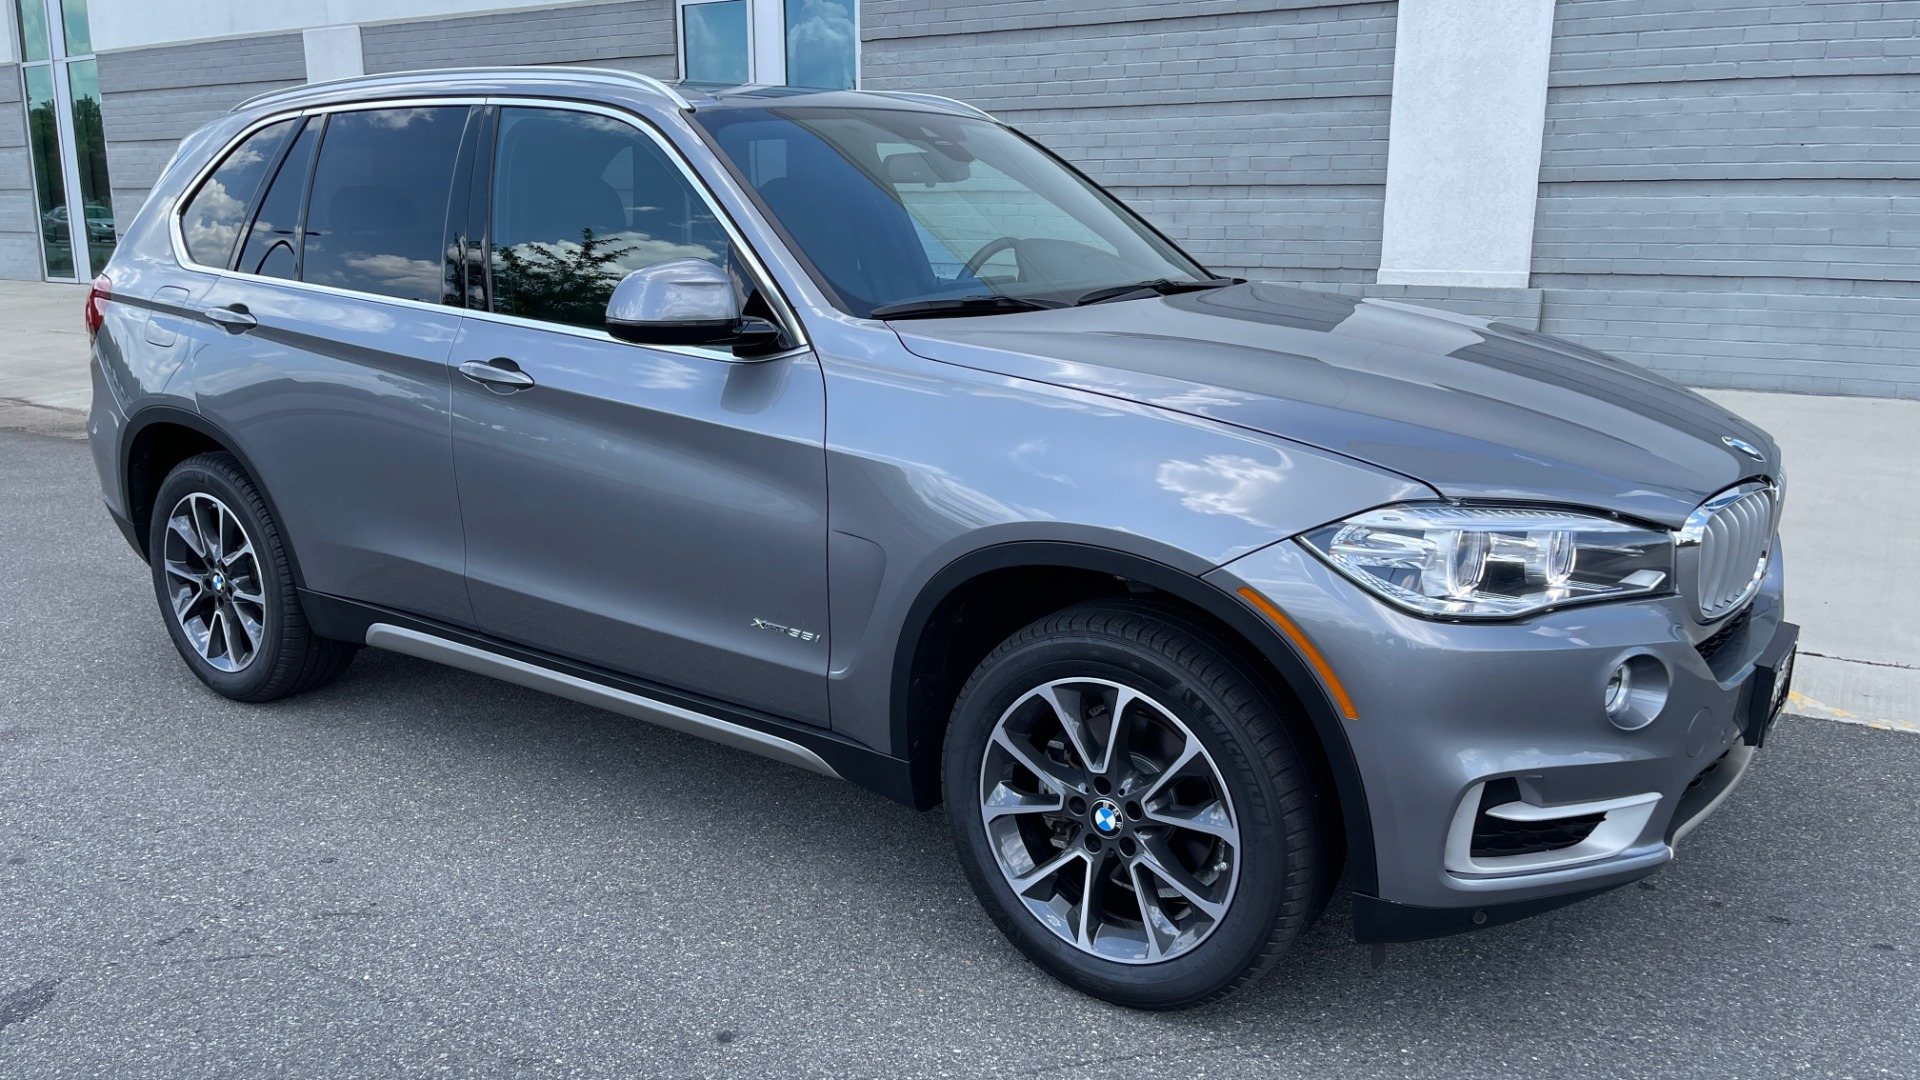 Used 2018 BMW X5 XDRIVE35I PREMIUM / DRVR ASST / WIRELESS CHARGING / CAMERAS for sale $46,995 at Formula Imports in Charlotte NC 28227 6